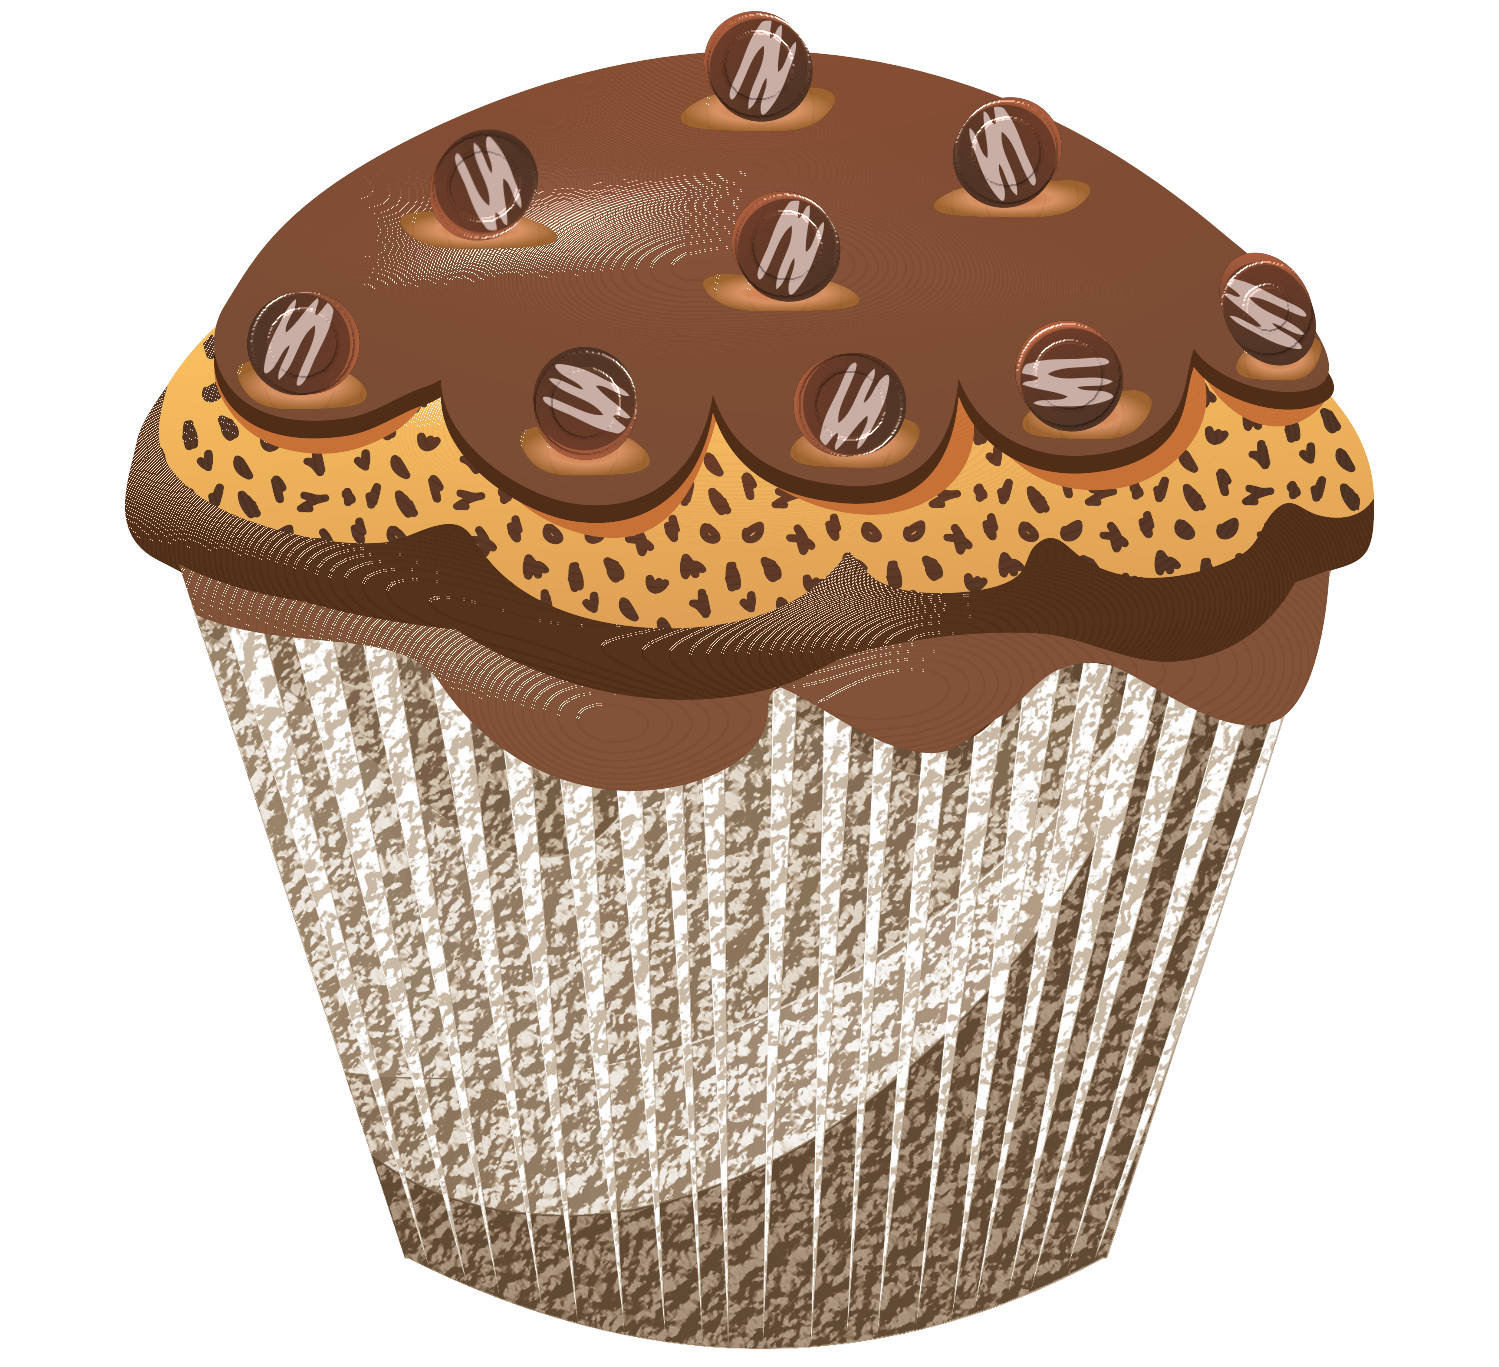 clip royalty free stock Cupcake pinterest clip art. Muffins clipart chalkboard.